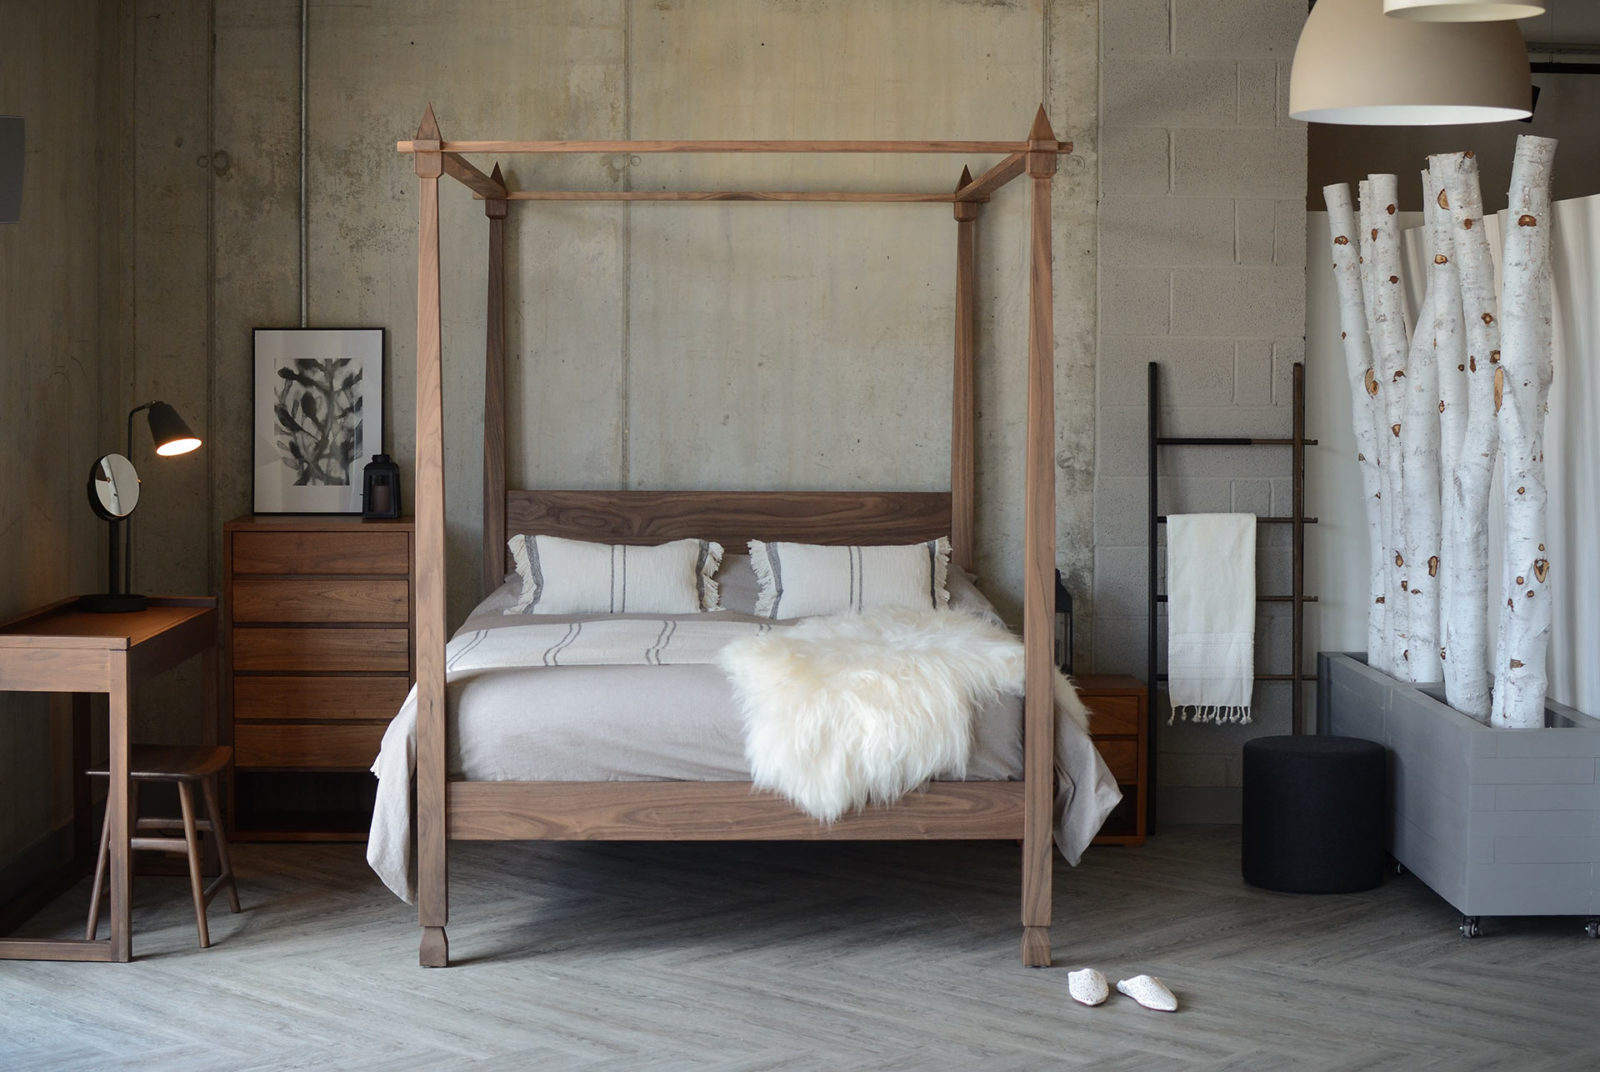 Walnut Raj 4-Poster Bed for Contemporary Indian style, handmade in Sheffield UK